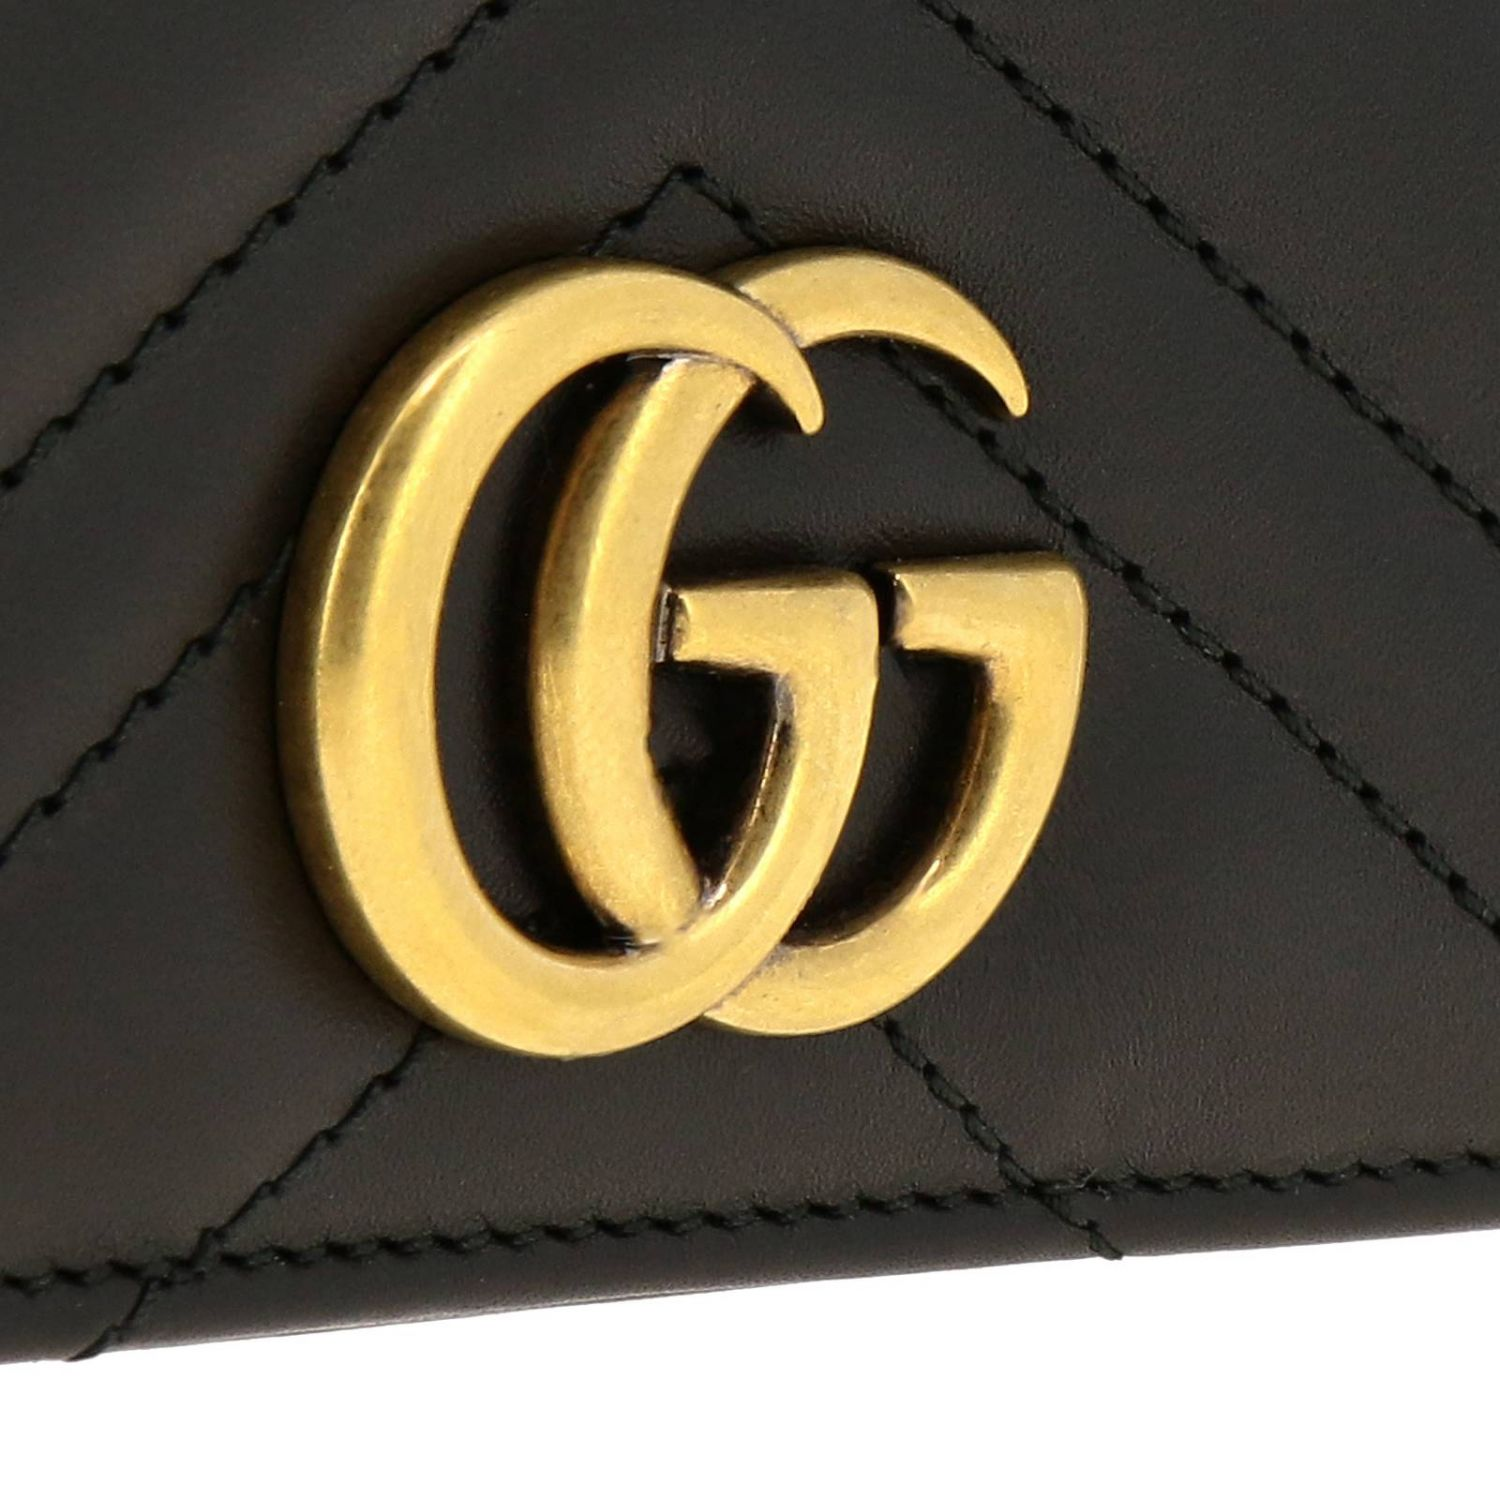 Mini bag Gucci: GG Marmont Gucci genuine quilted leather handbag with chevron pattern black 4